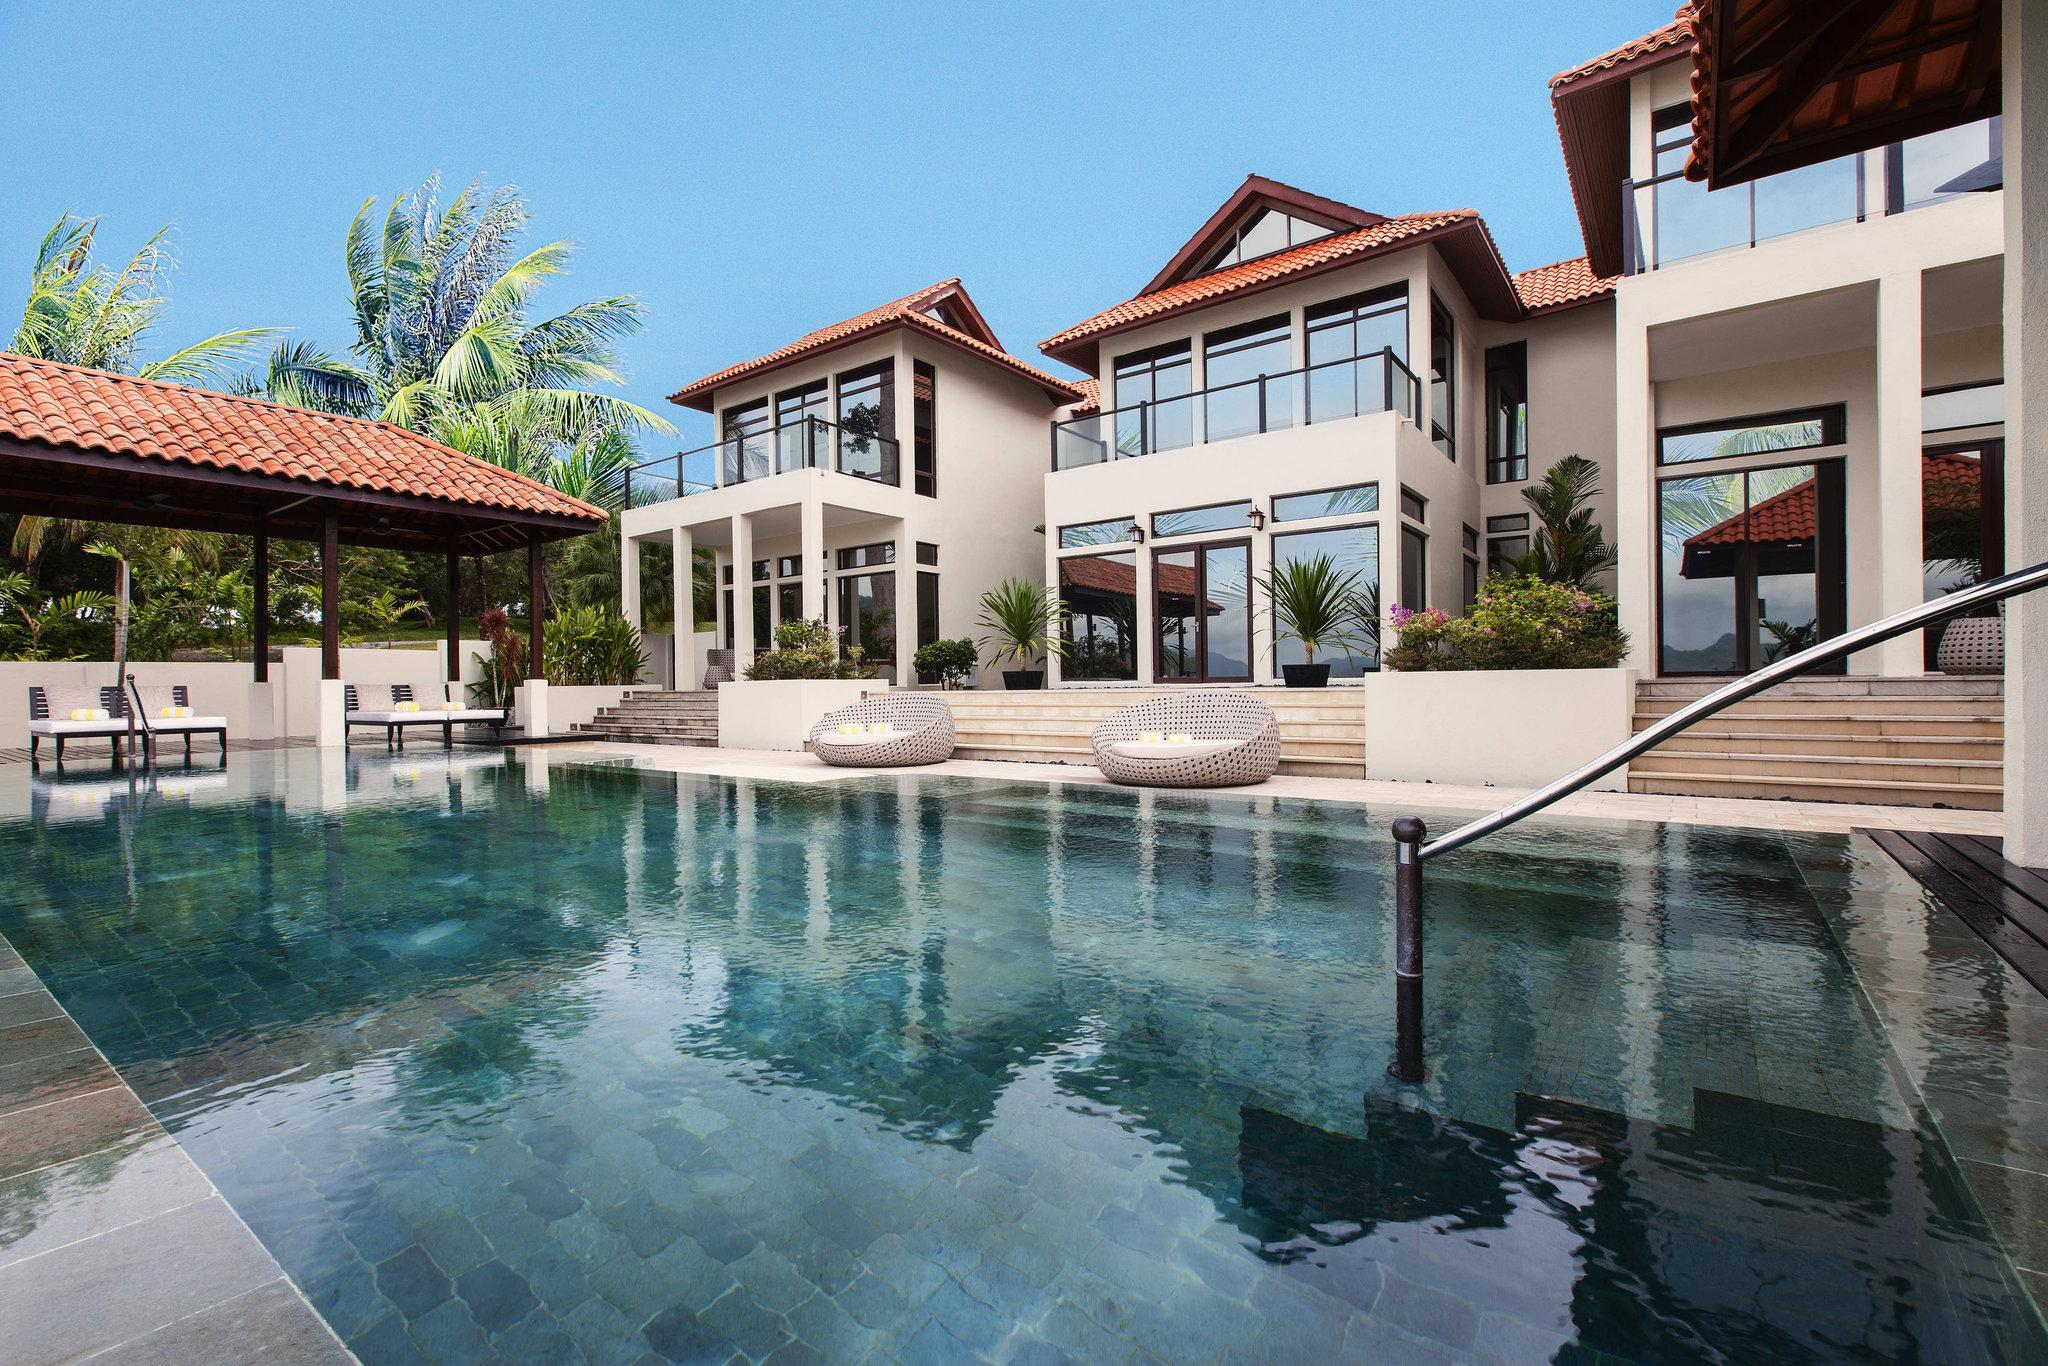 5 Bedroom Villa, Ocean view, Private pool